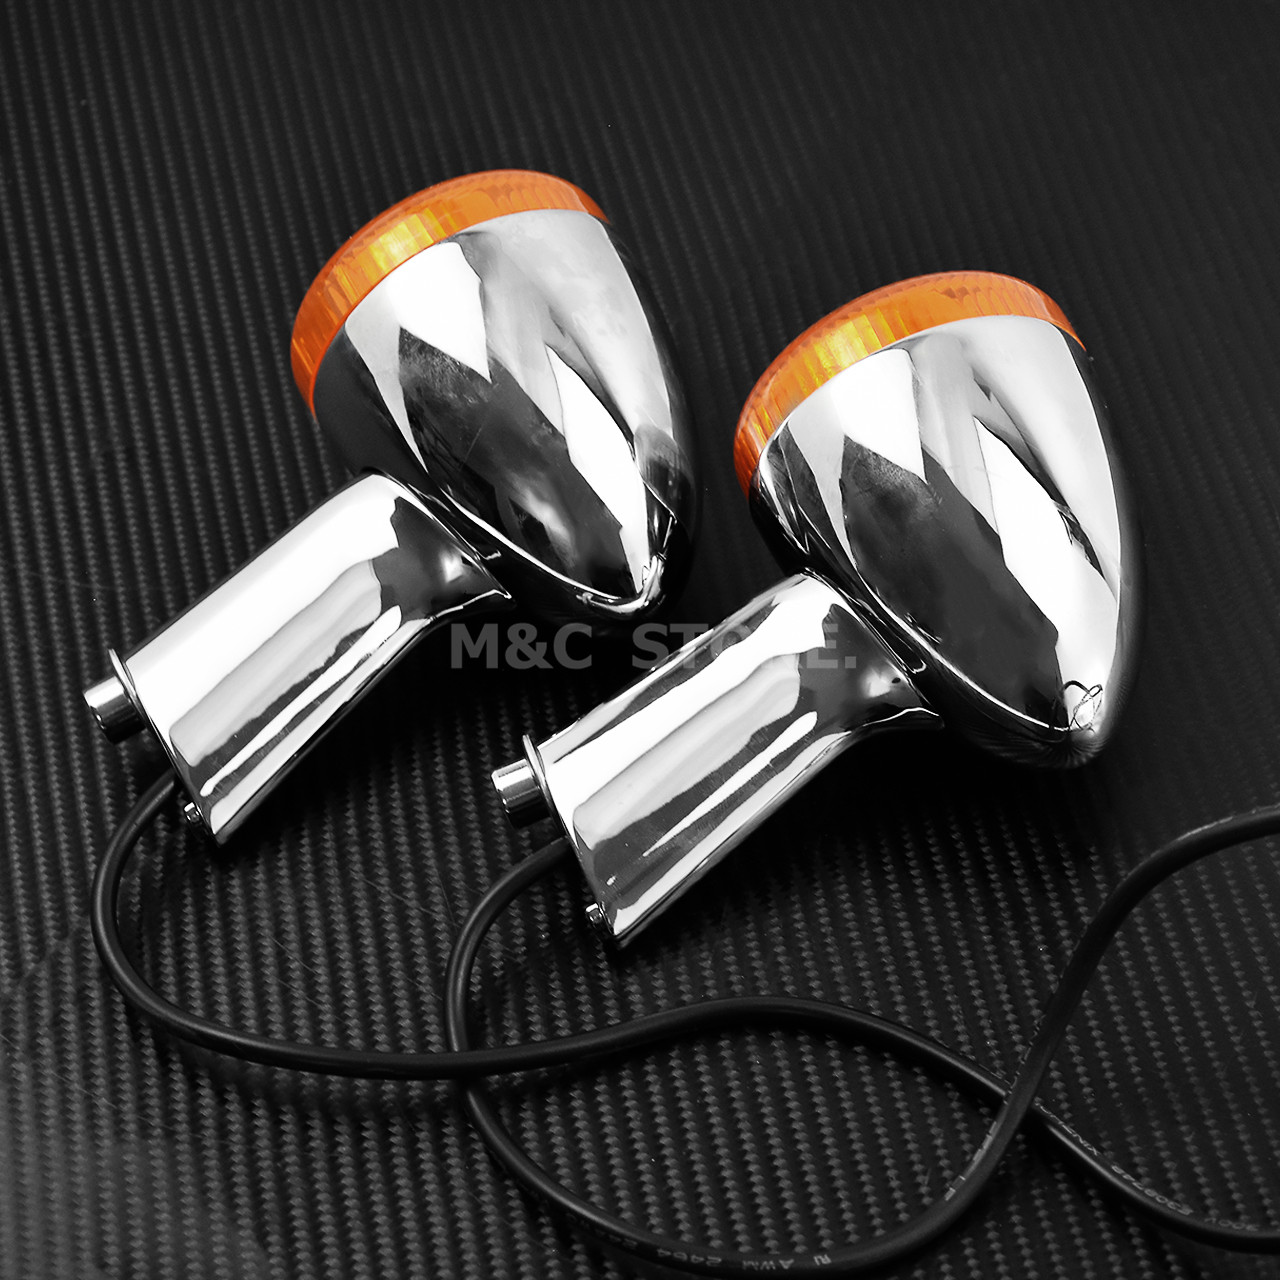 cheapest 1Pair Motorcycle Led Turn Signals Kit for Harley Road Glide Touring Sportster with 1156 1157 Base White Amber Led Turn Signal